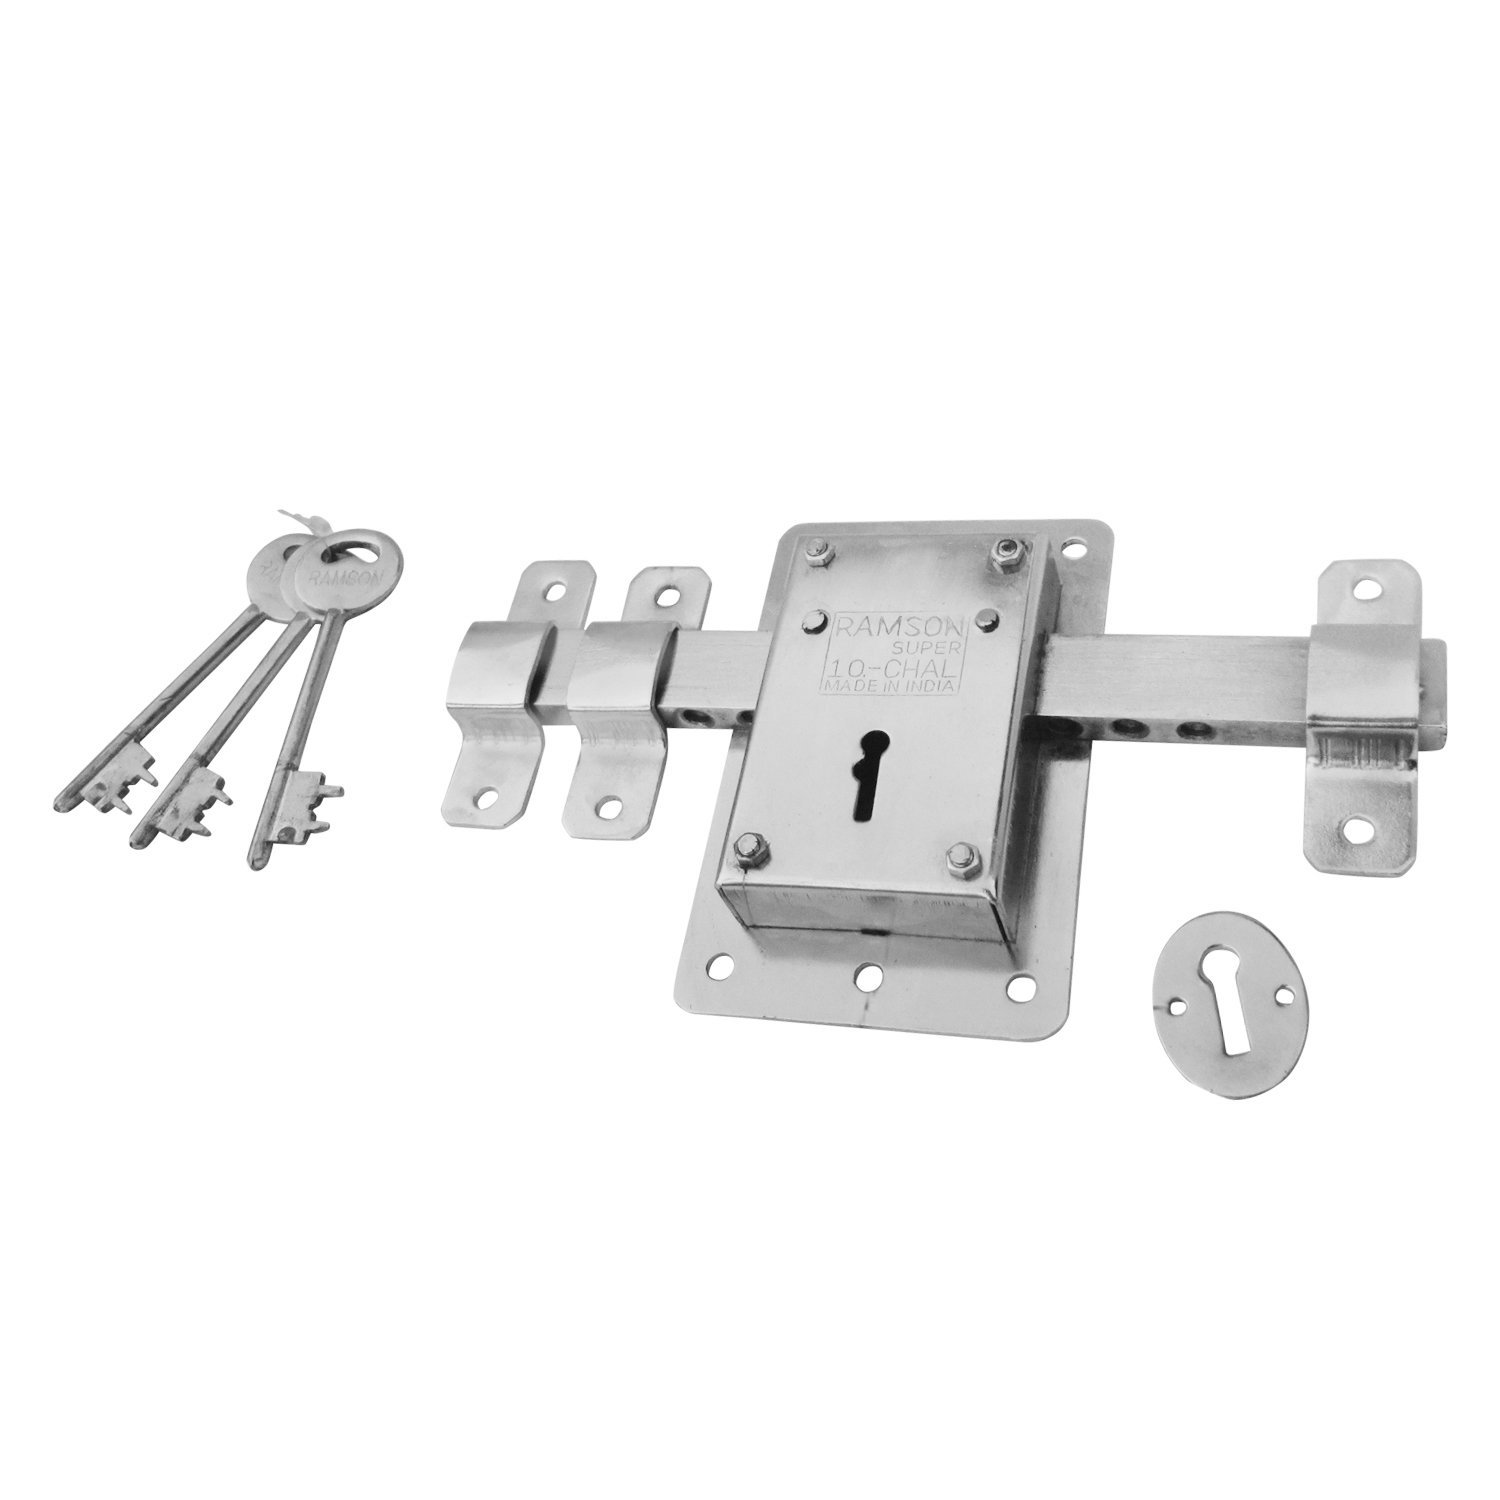 RAMSON 10 Chal Iron Door Lock with 3 Keys for High Security Operated from Both Side of The Door (Steel Colour_142)